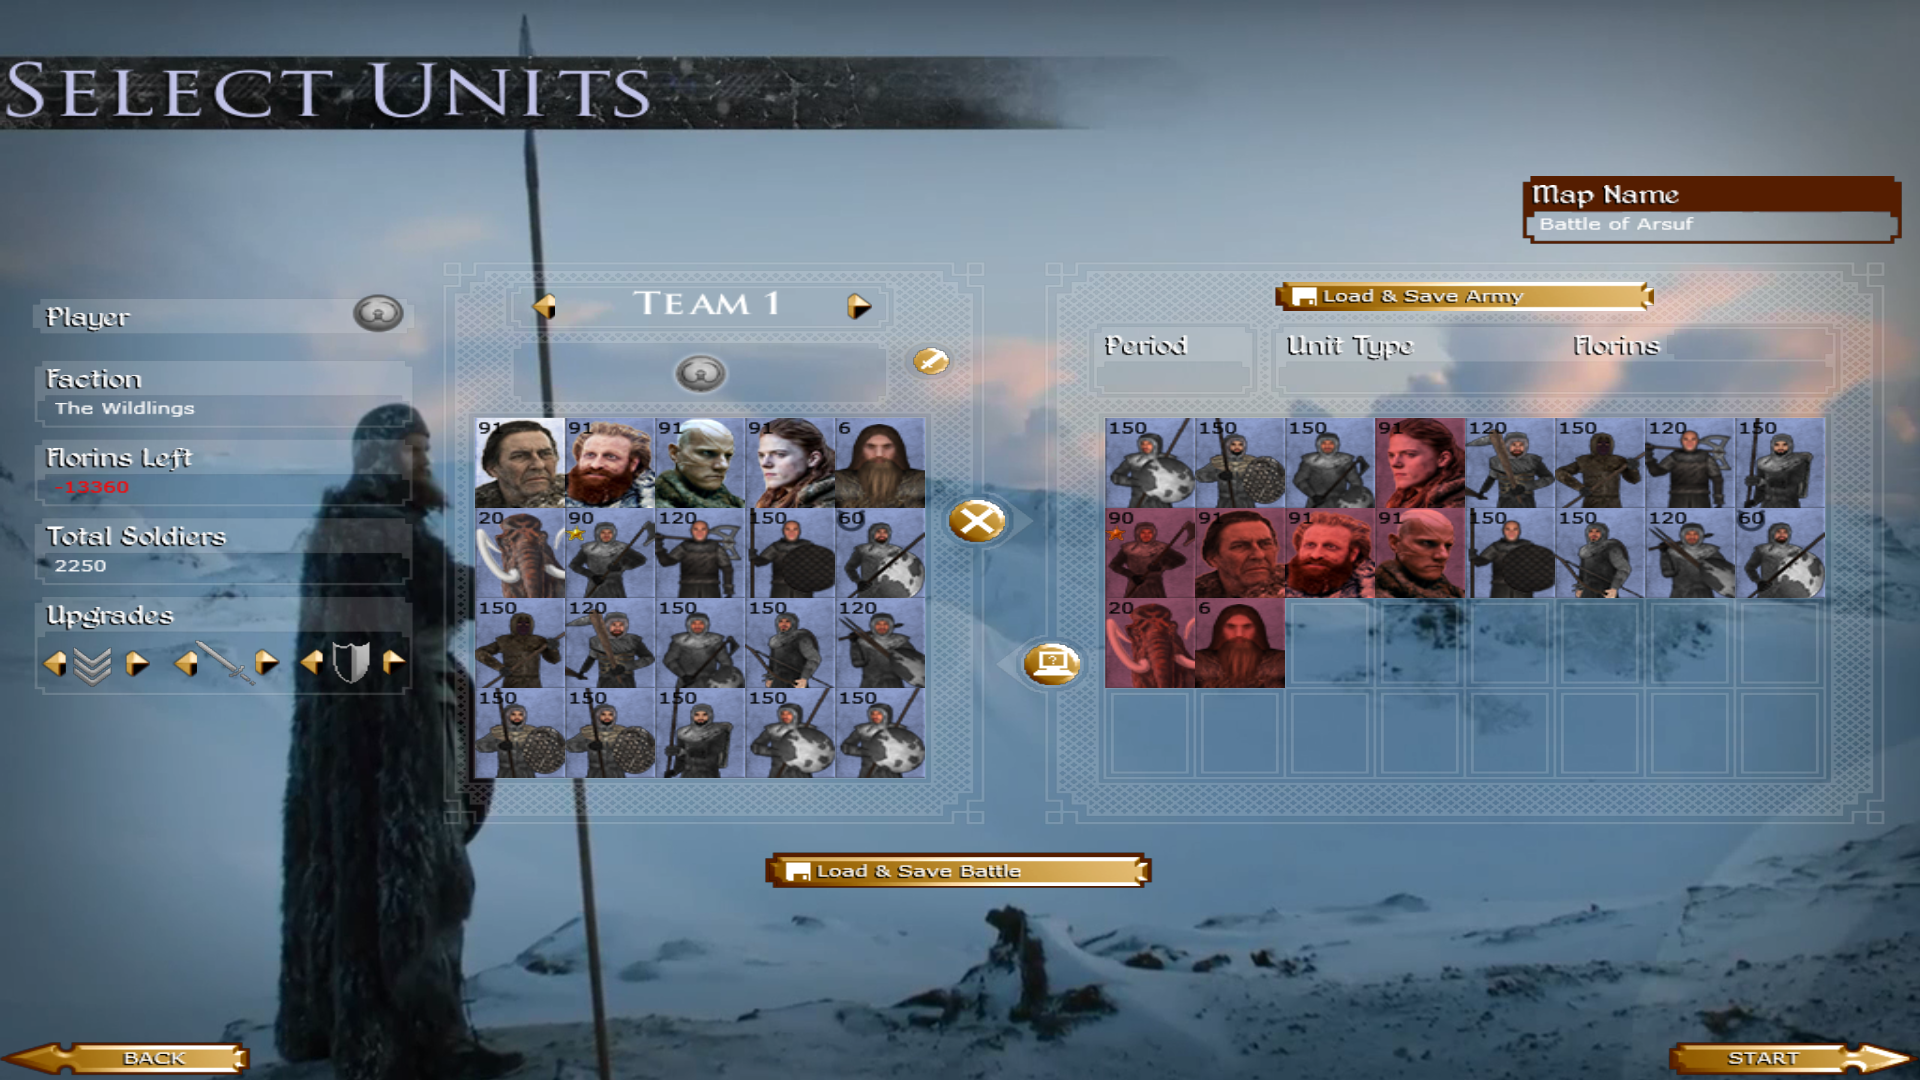 New updated Wildlings roster! (Courtesy of Firestorm).